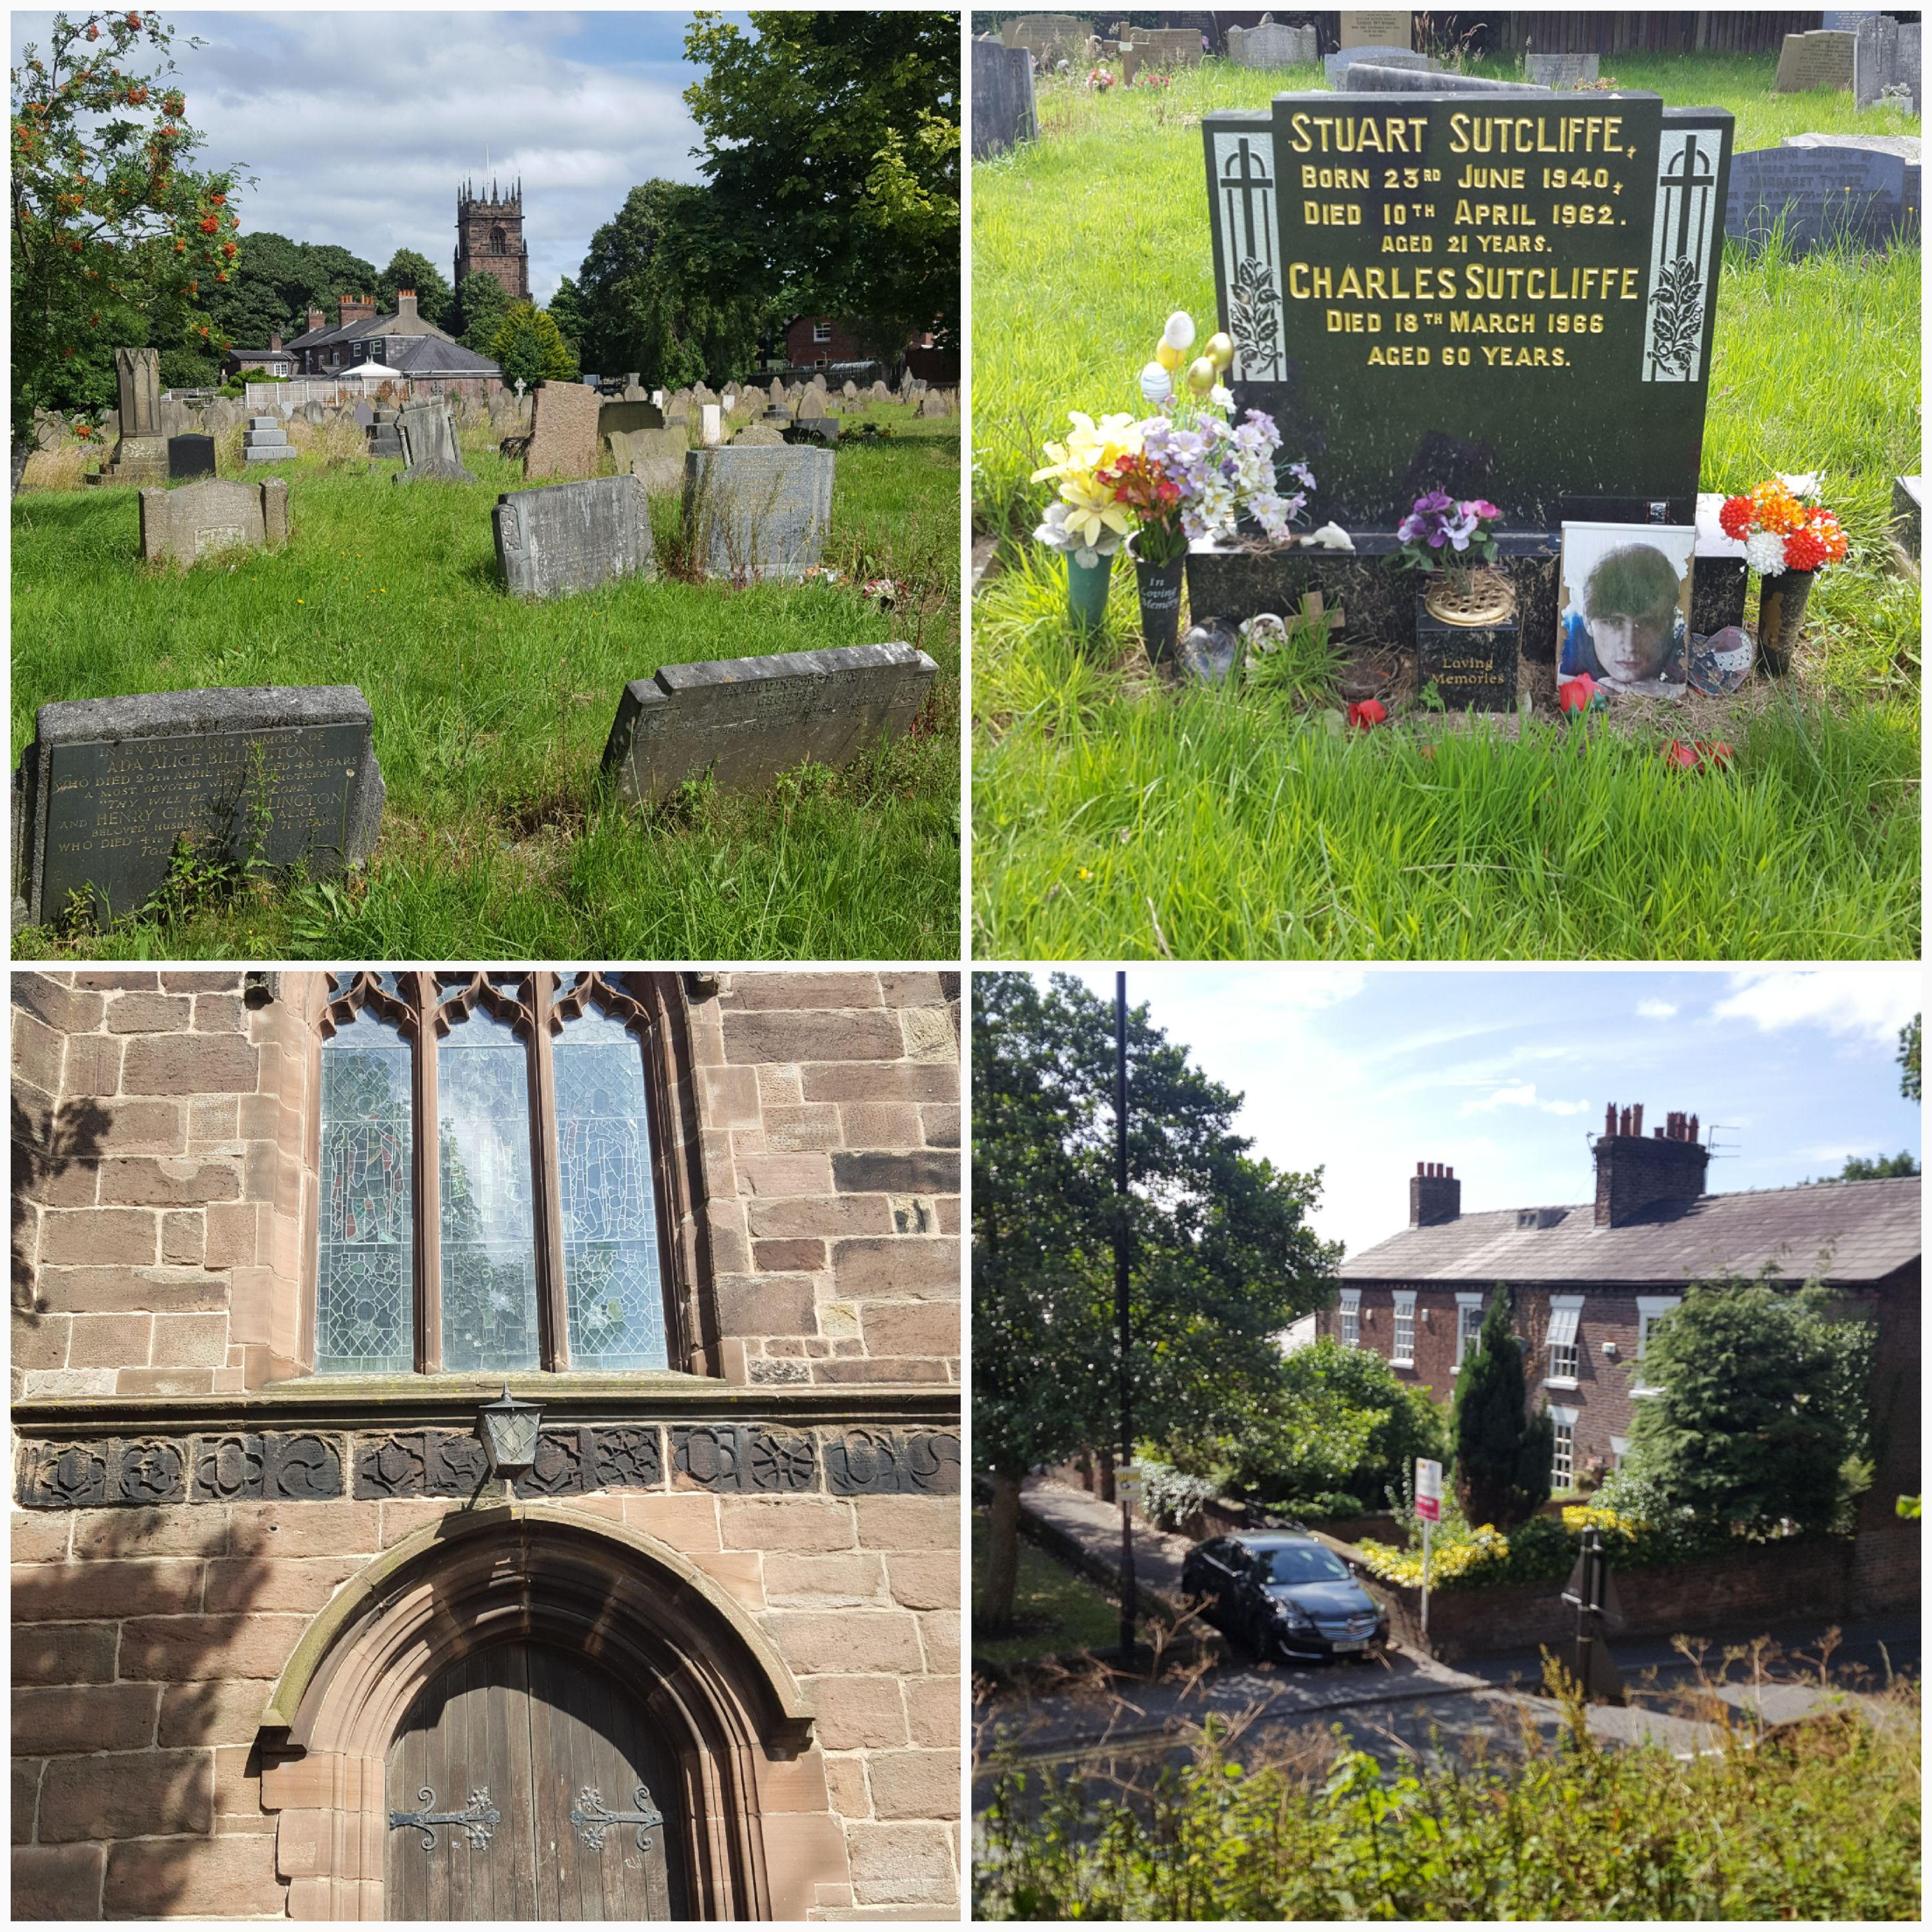 From top right: St Michaels Church Graveyard, Grave of Stuart Sutcliff, St Michaels Church Doorway, Derby Terrace